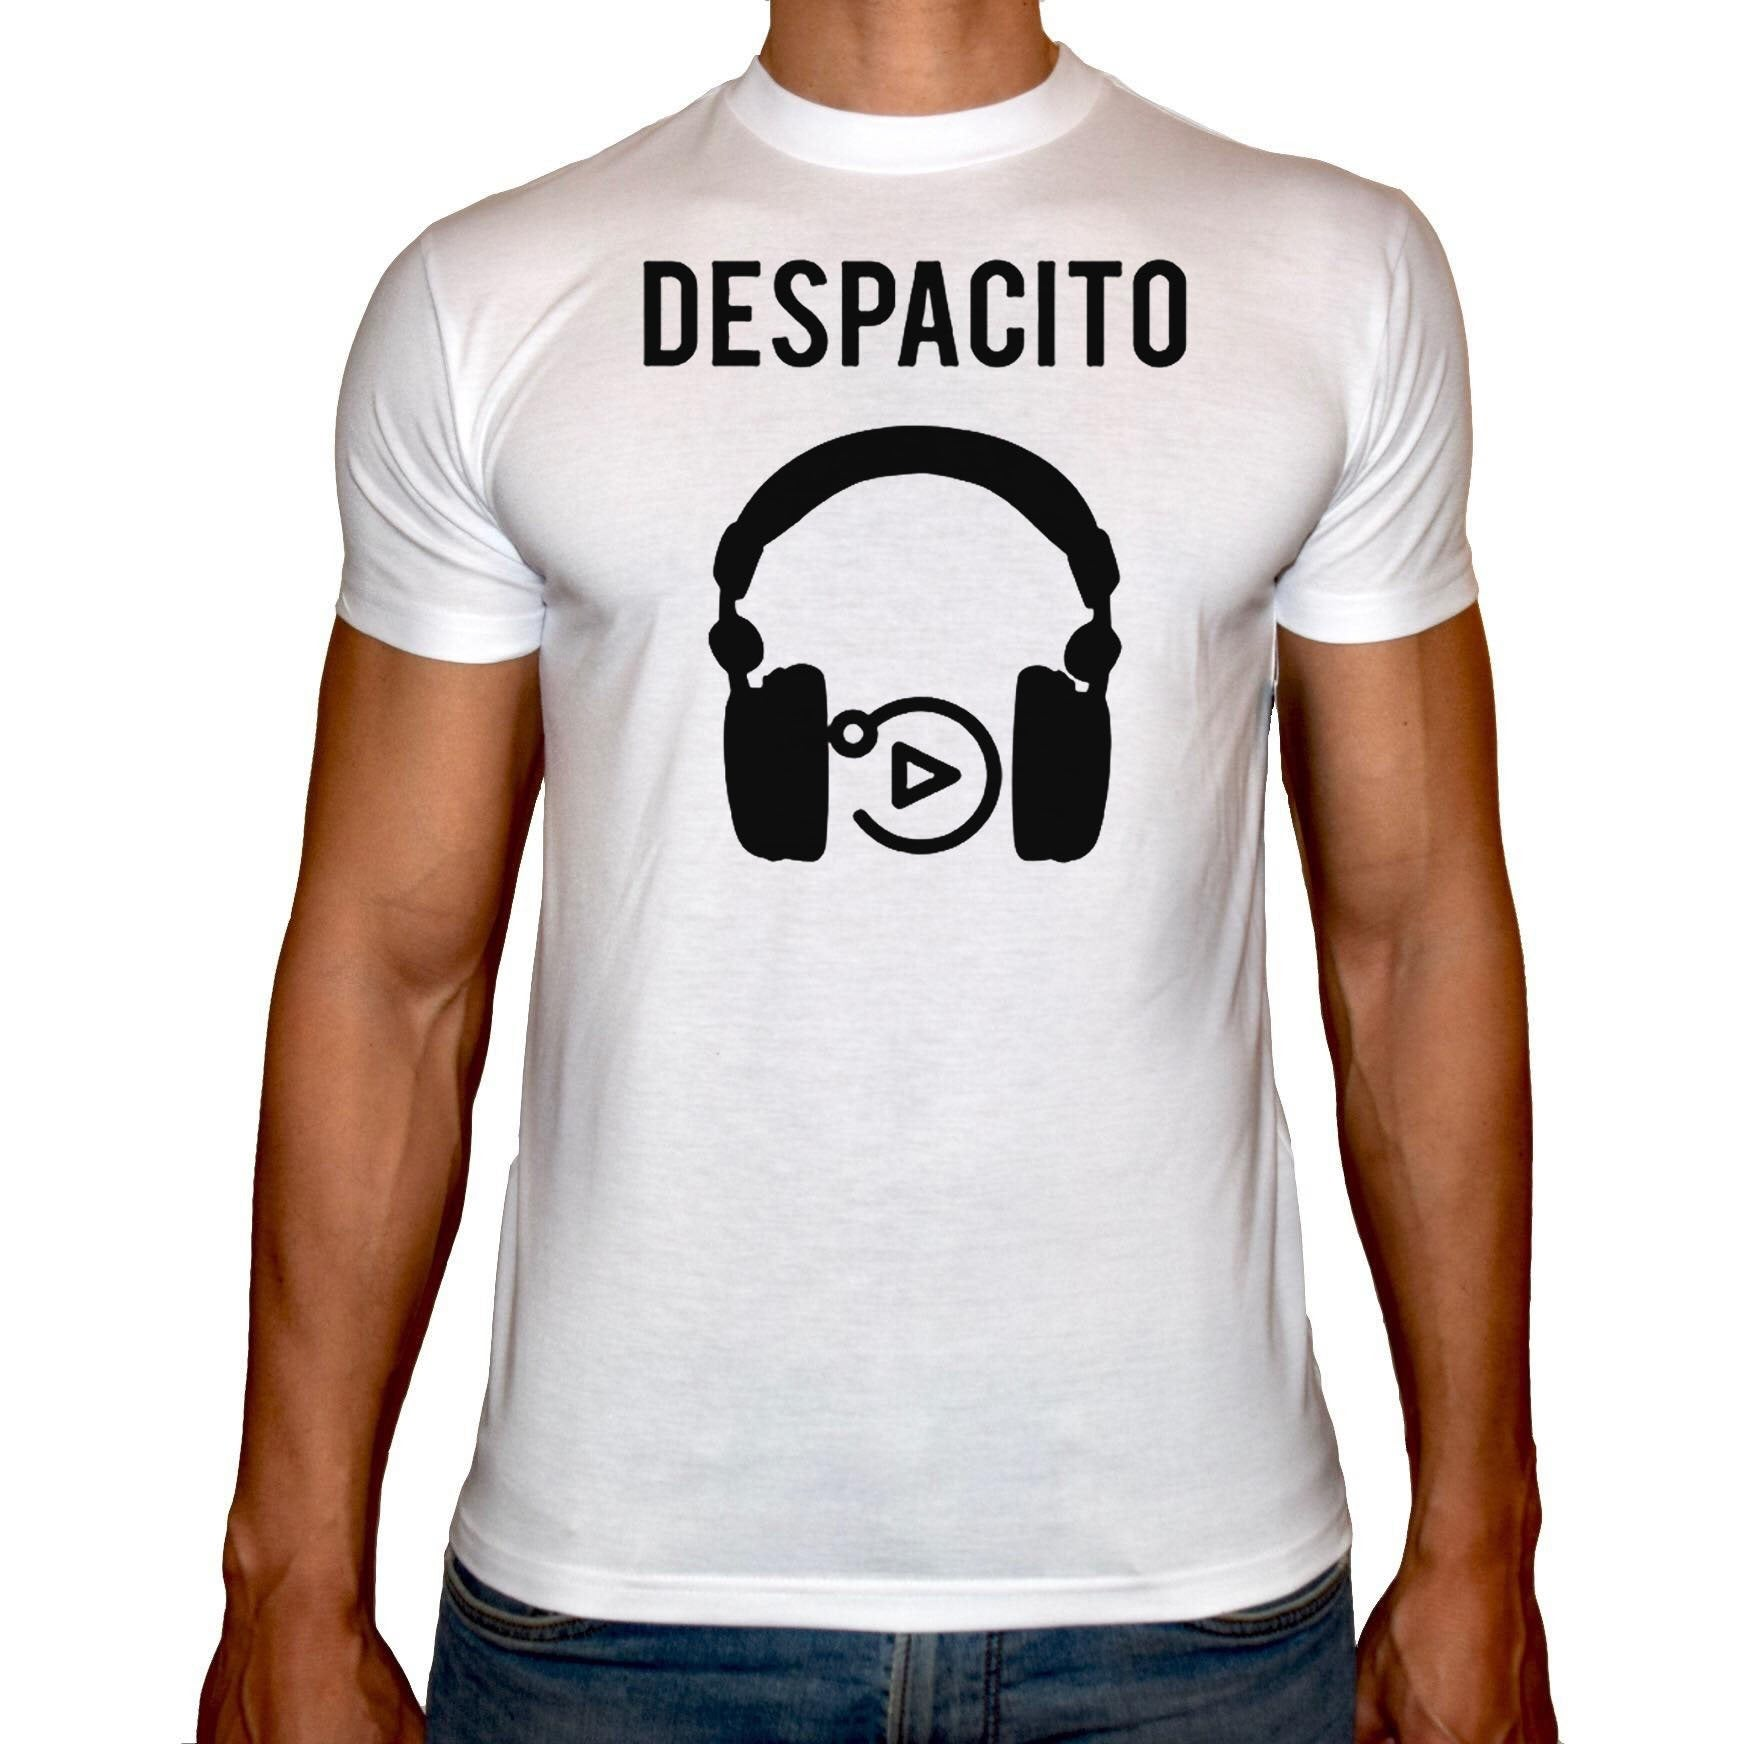 Phoenix WHITE Round Neck Printed T-Shirt Men (Despacito)